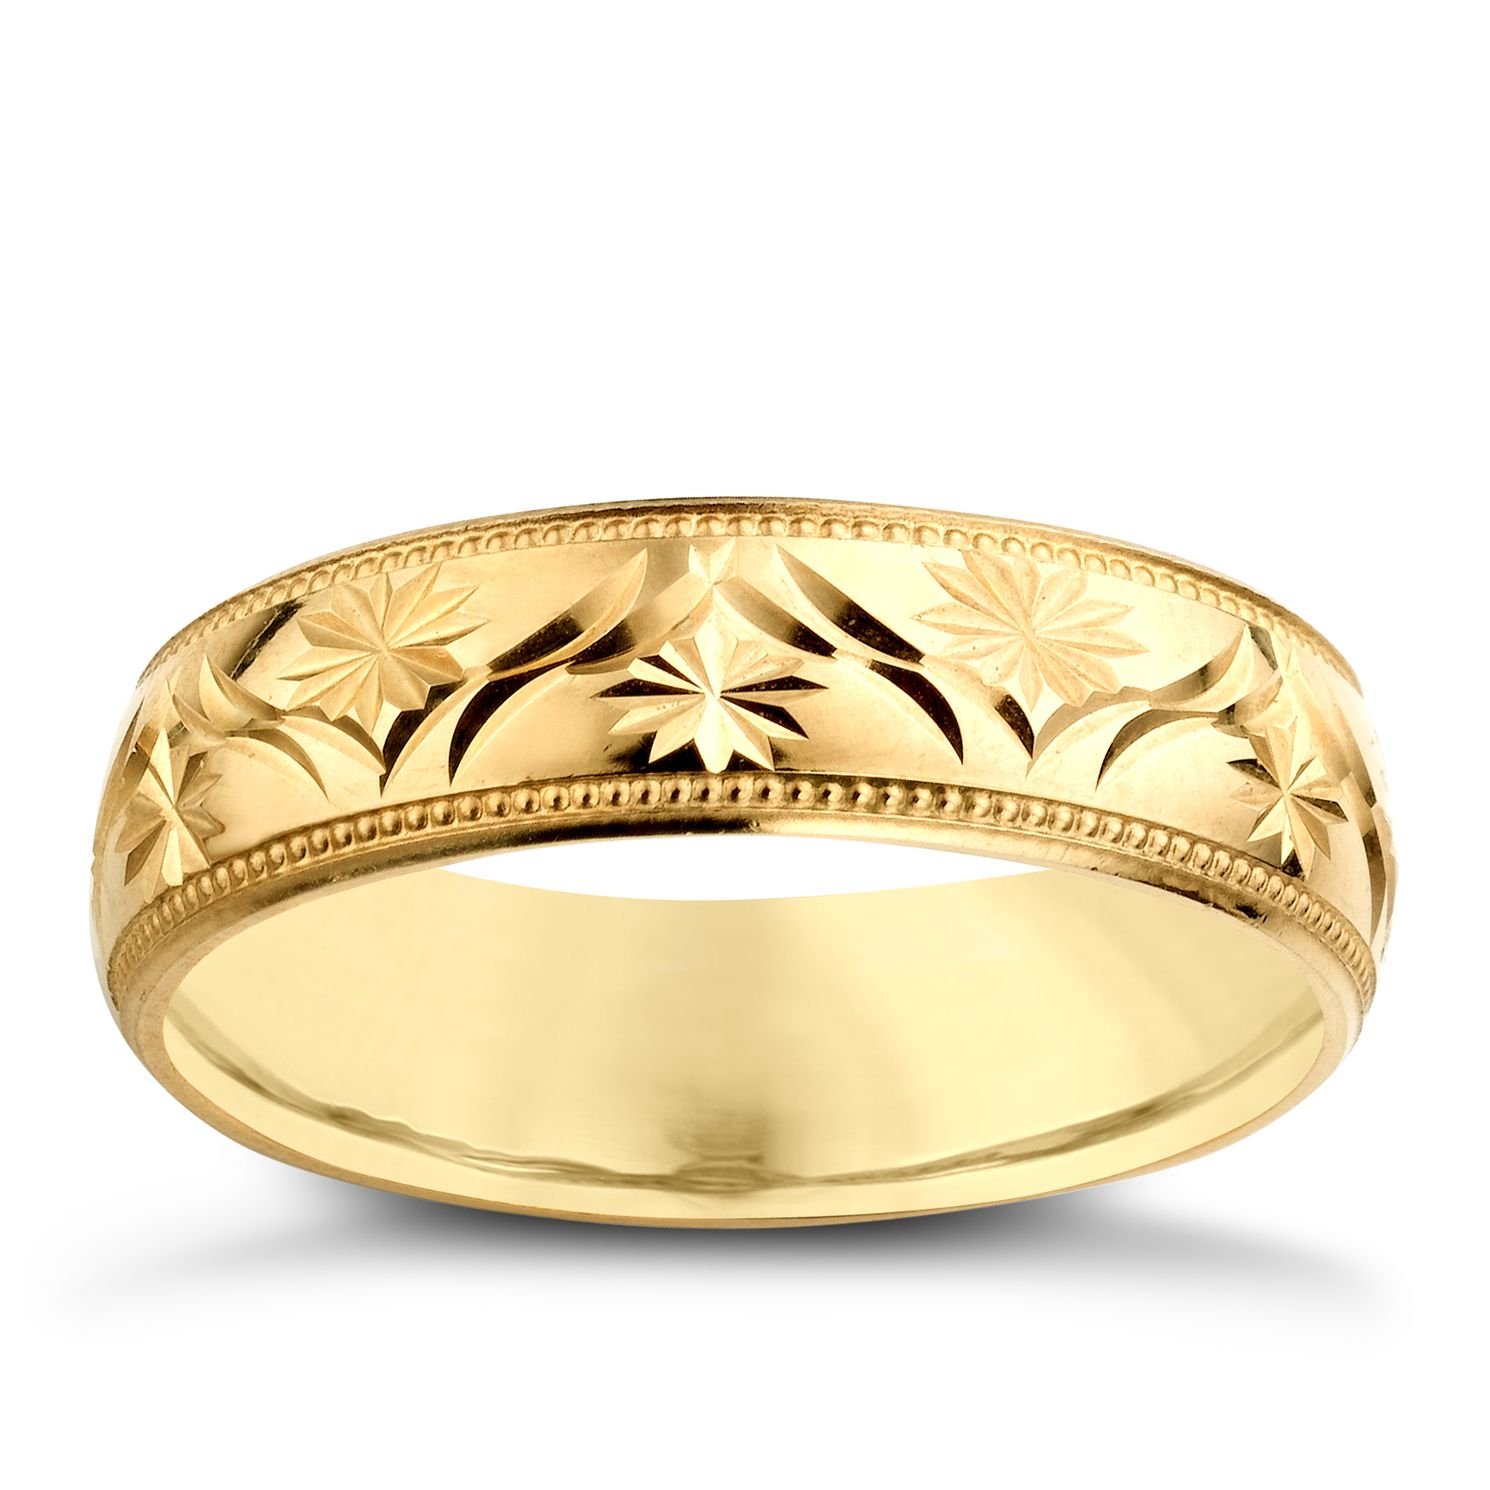 idai baskan two wedding ring co rings golden